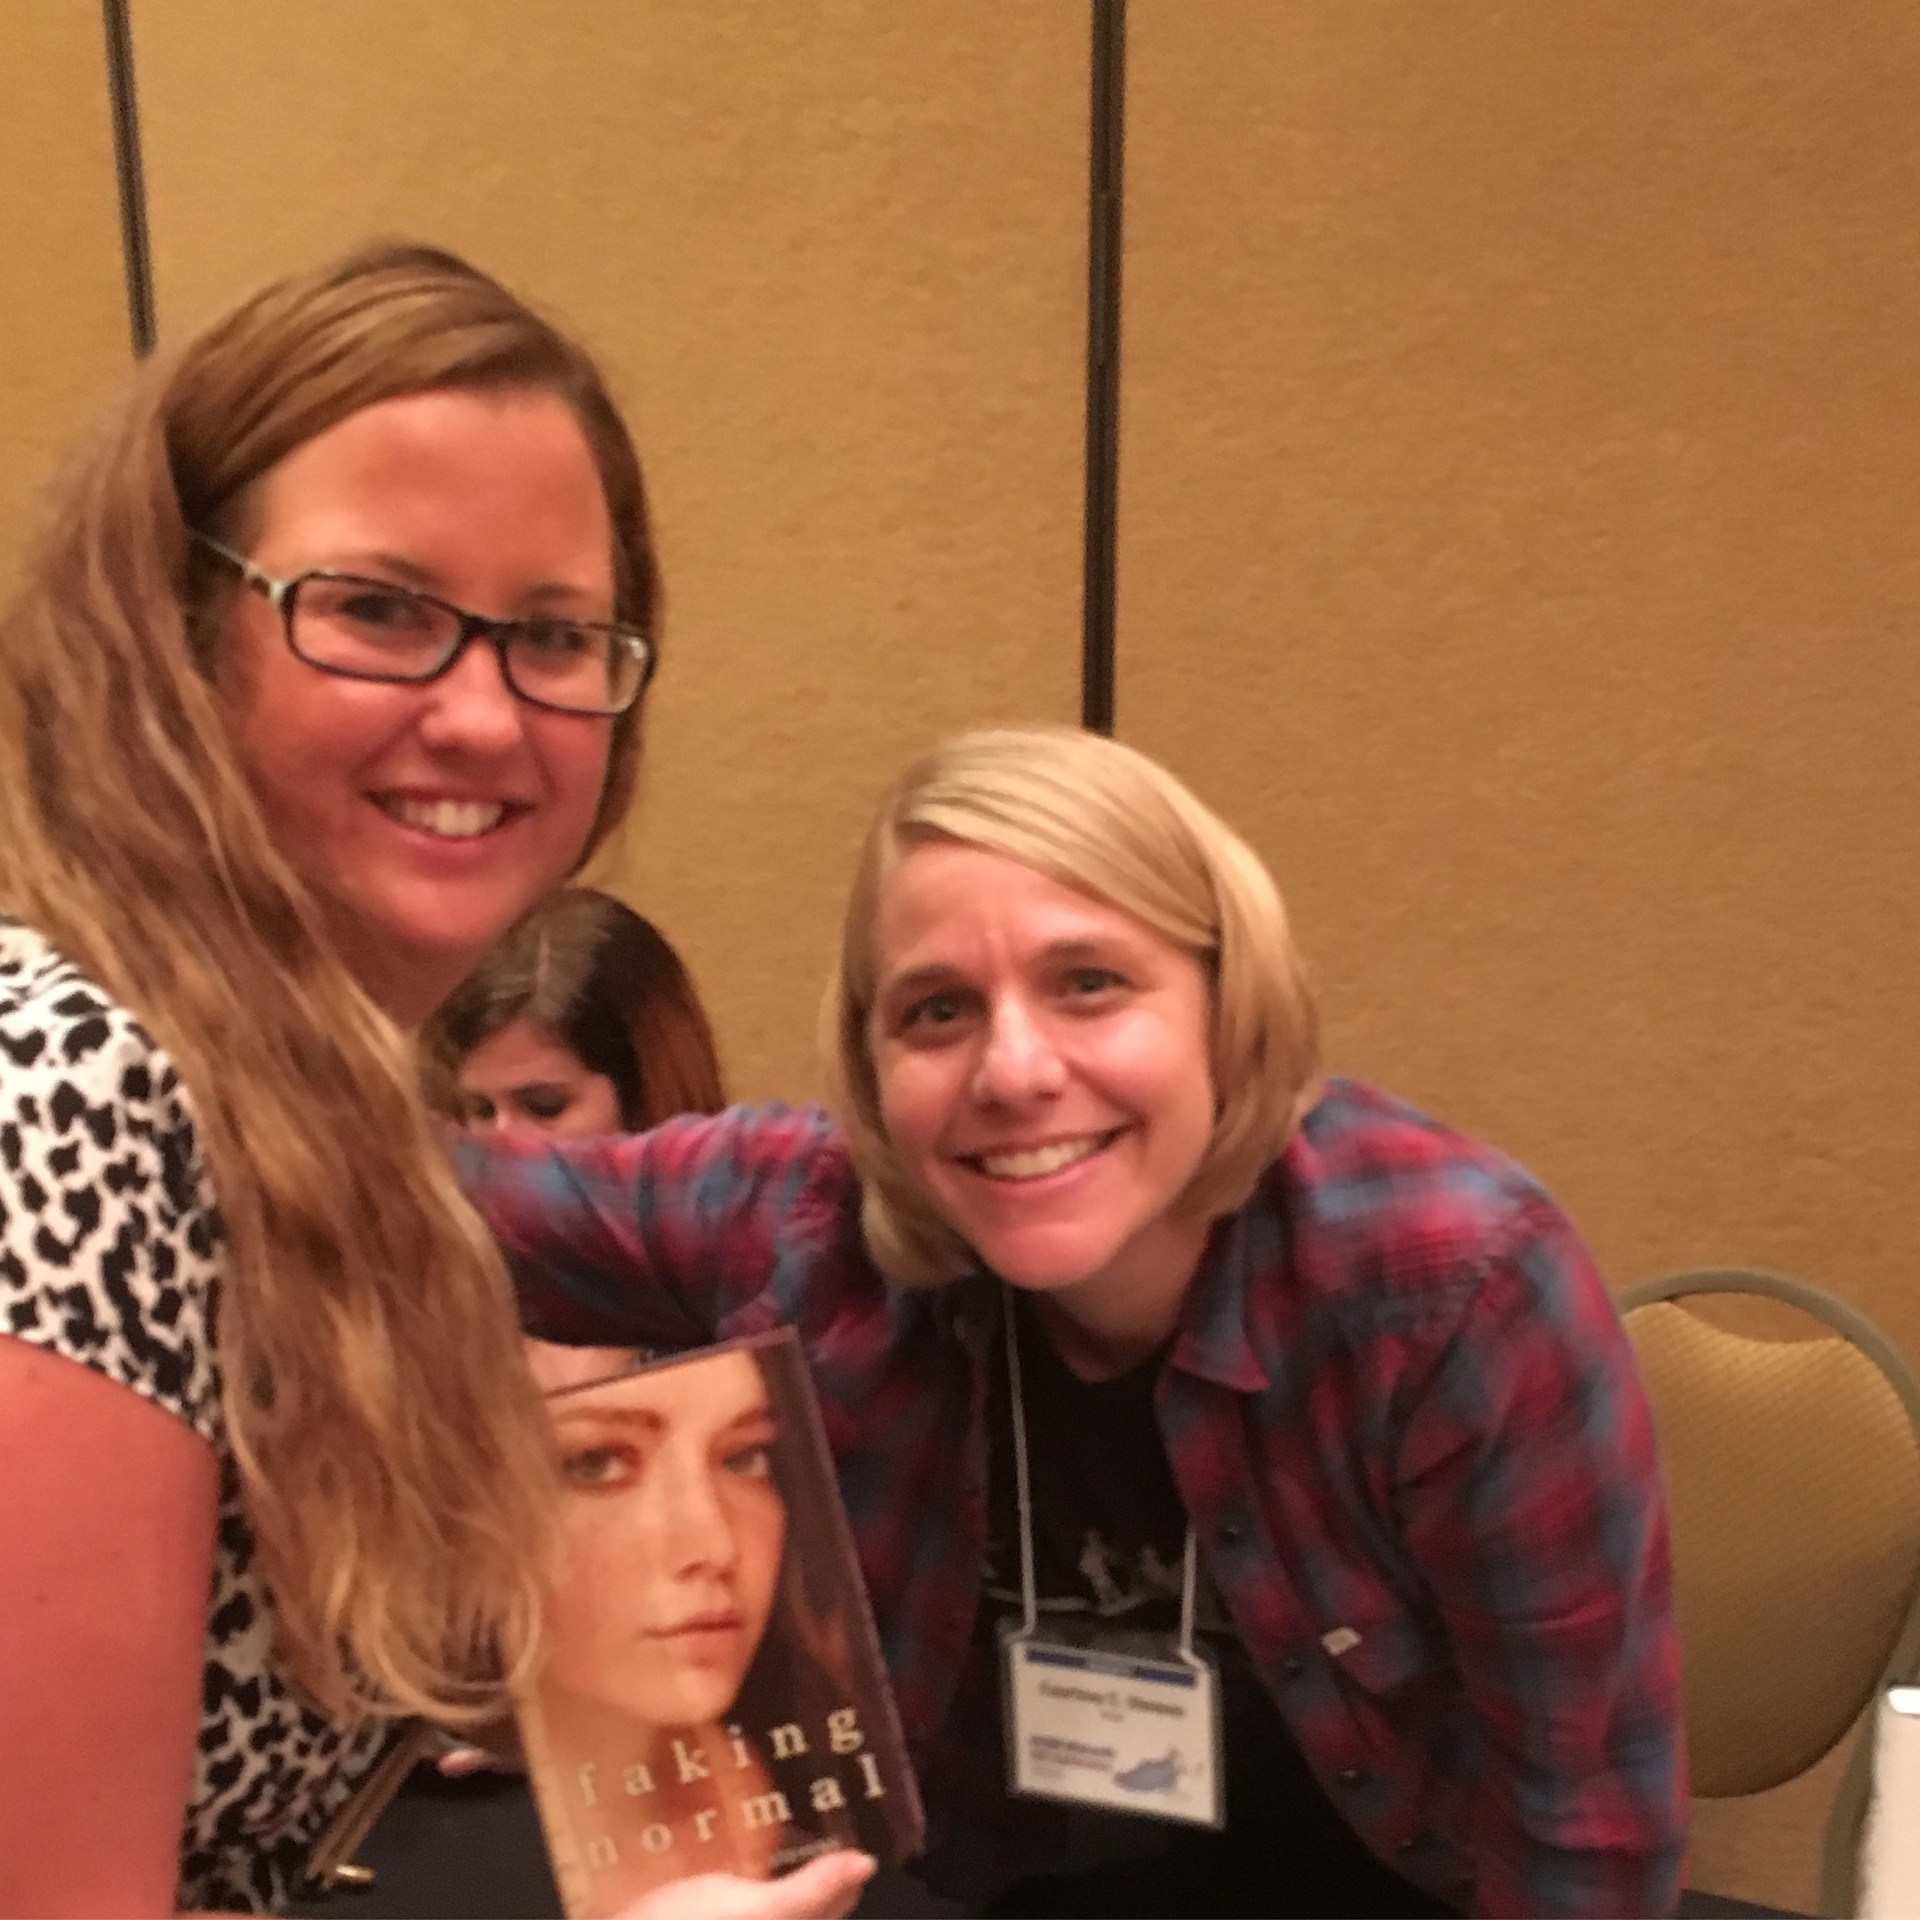 Ms. Rein with author Courtney Stevens